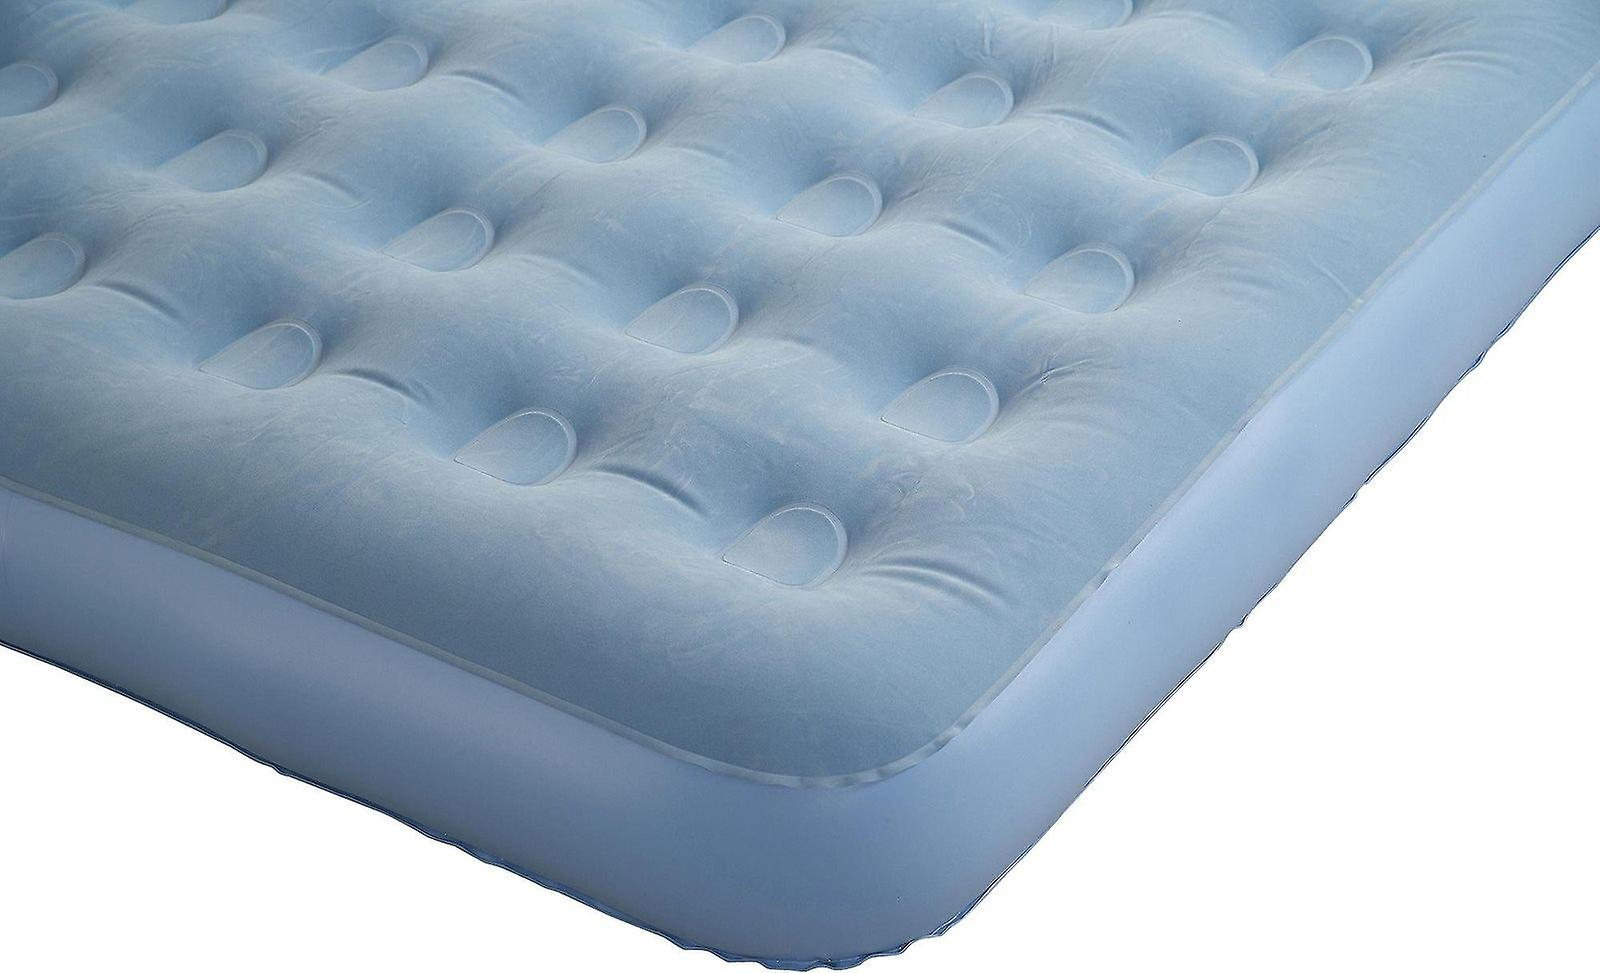 Aerobed Double Airbed Self Inflating Built in Electric Pump 1 Year Guarantee